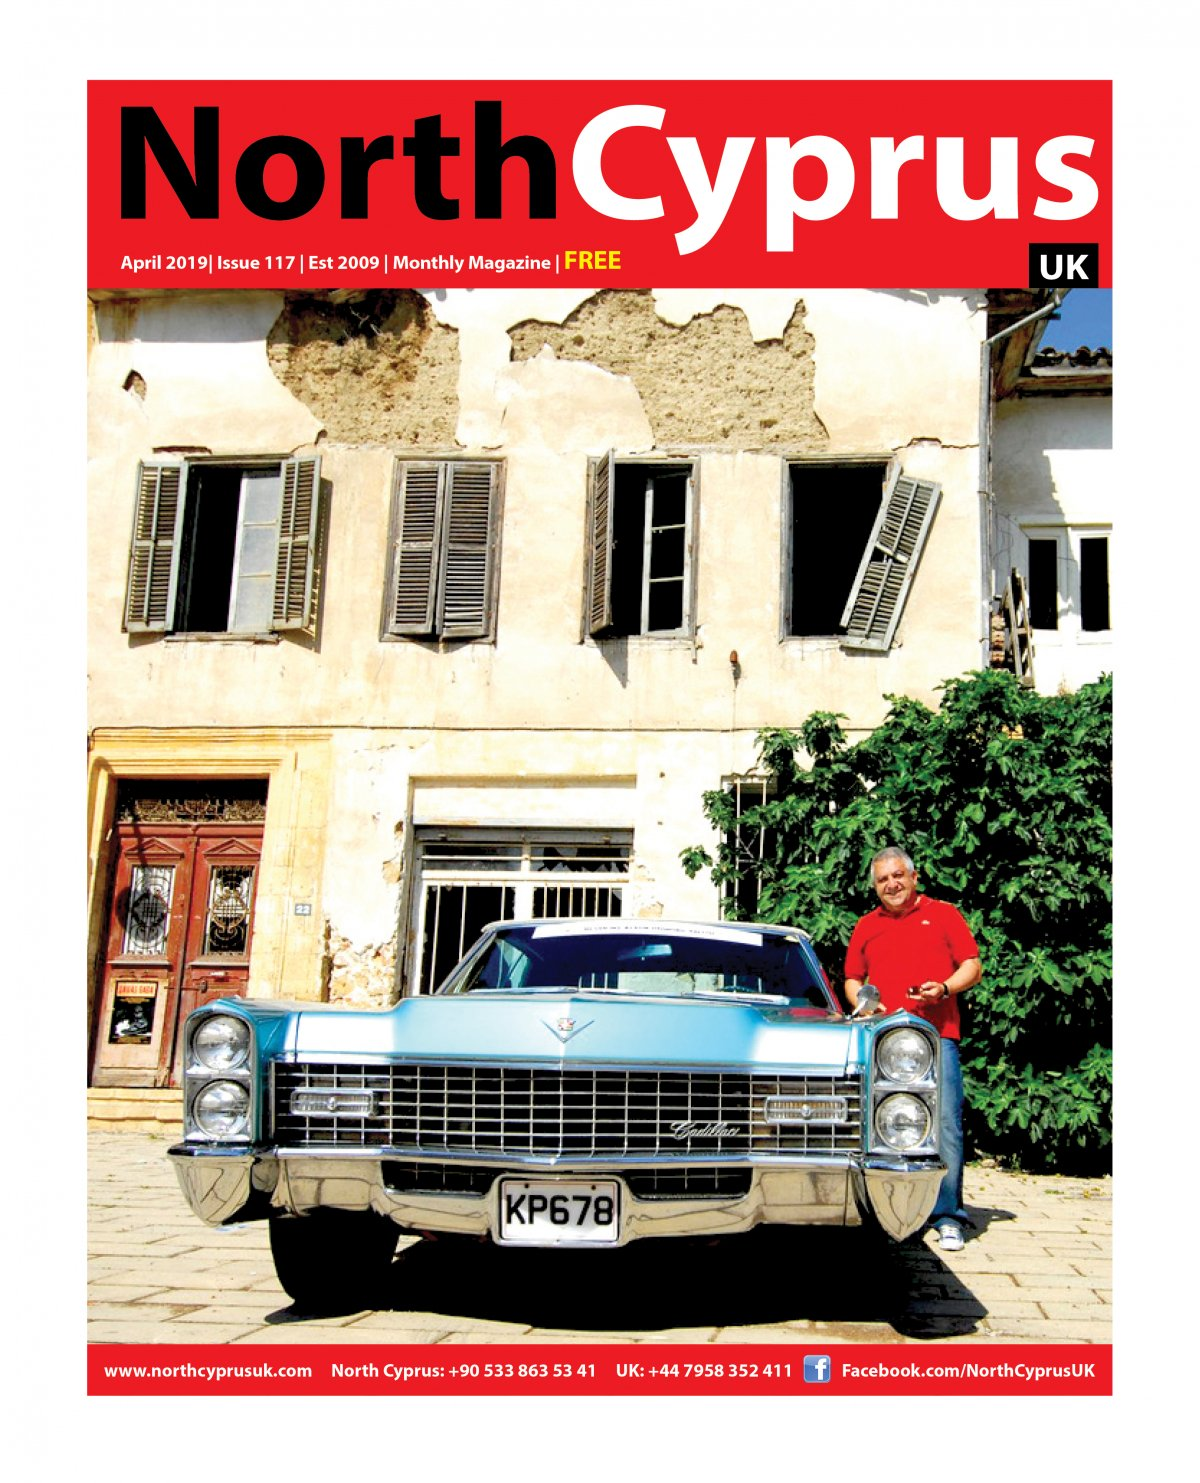 North Cyprus UK - 11.04.2019 Manşeti